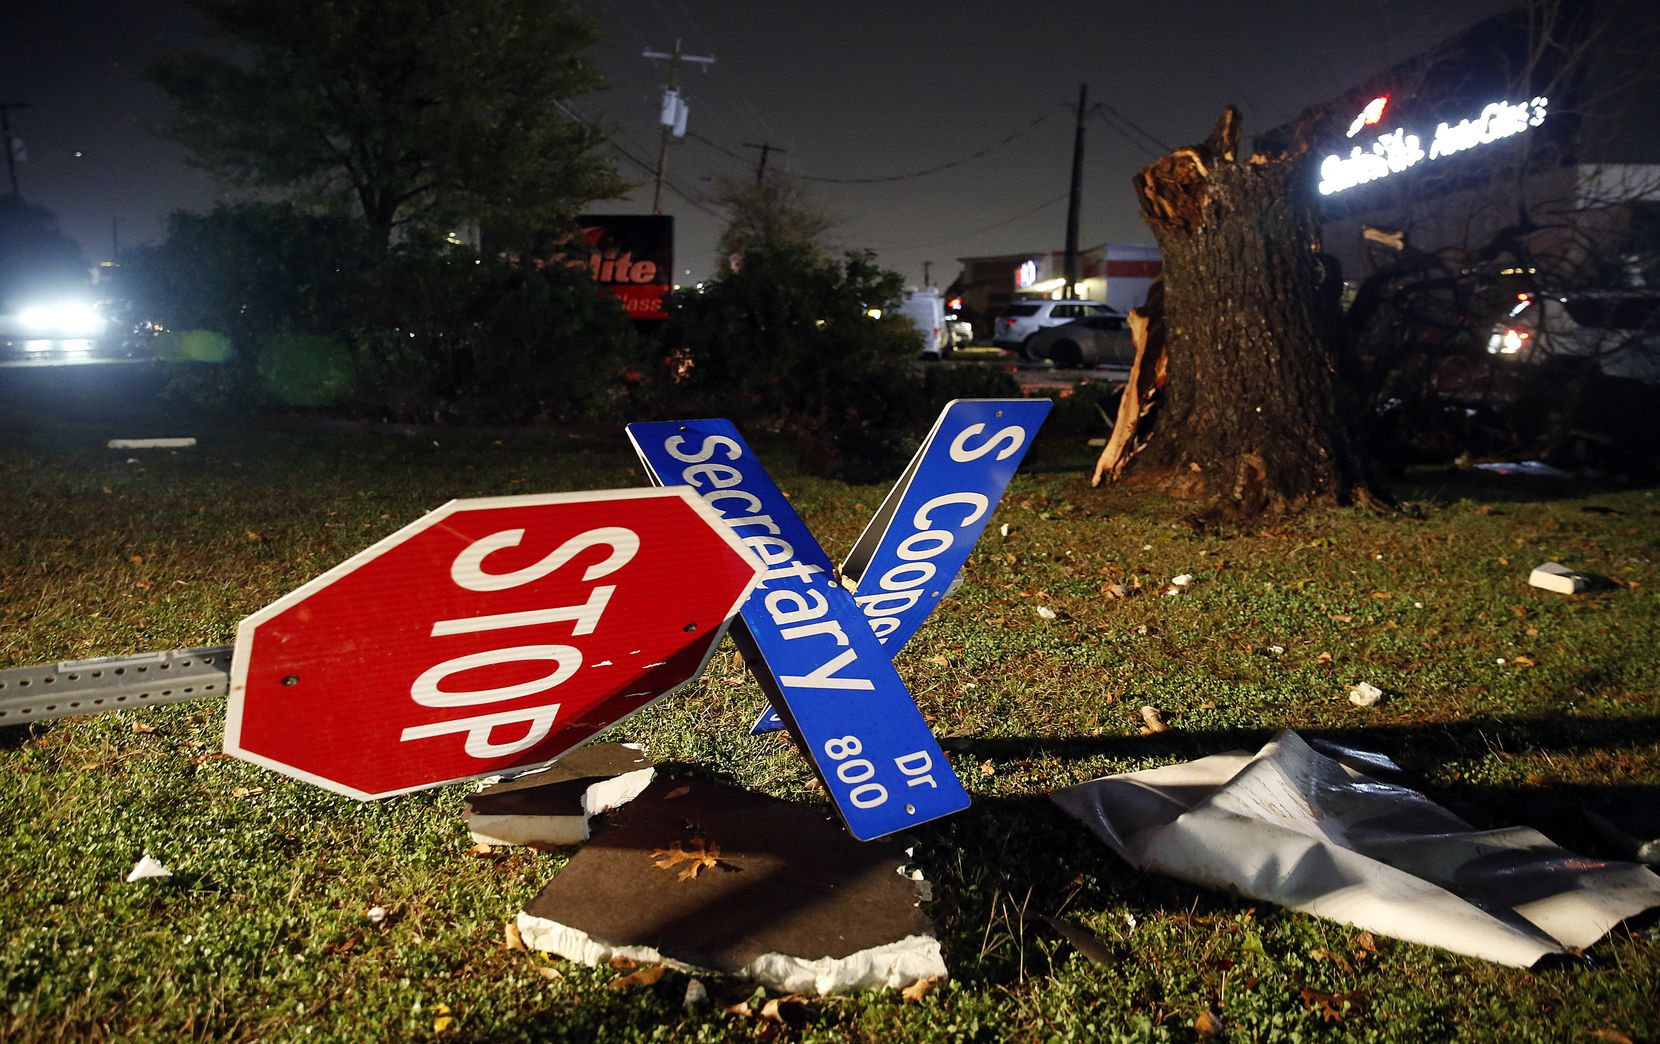 The street sign on Cooper St. at Secretary Dr. was blown over in Arlington when a tornado-warned storm blew through, Tuesday night, November 24, 2020. No one was seriously injured across the street at the Burger Box restaurant.